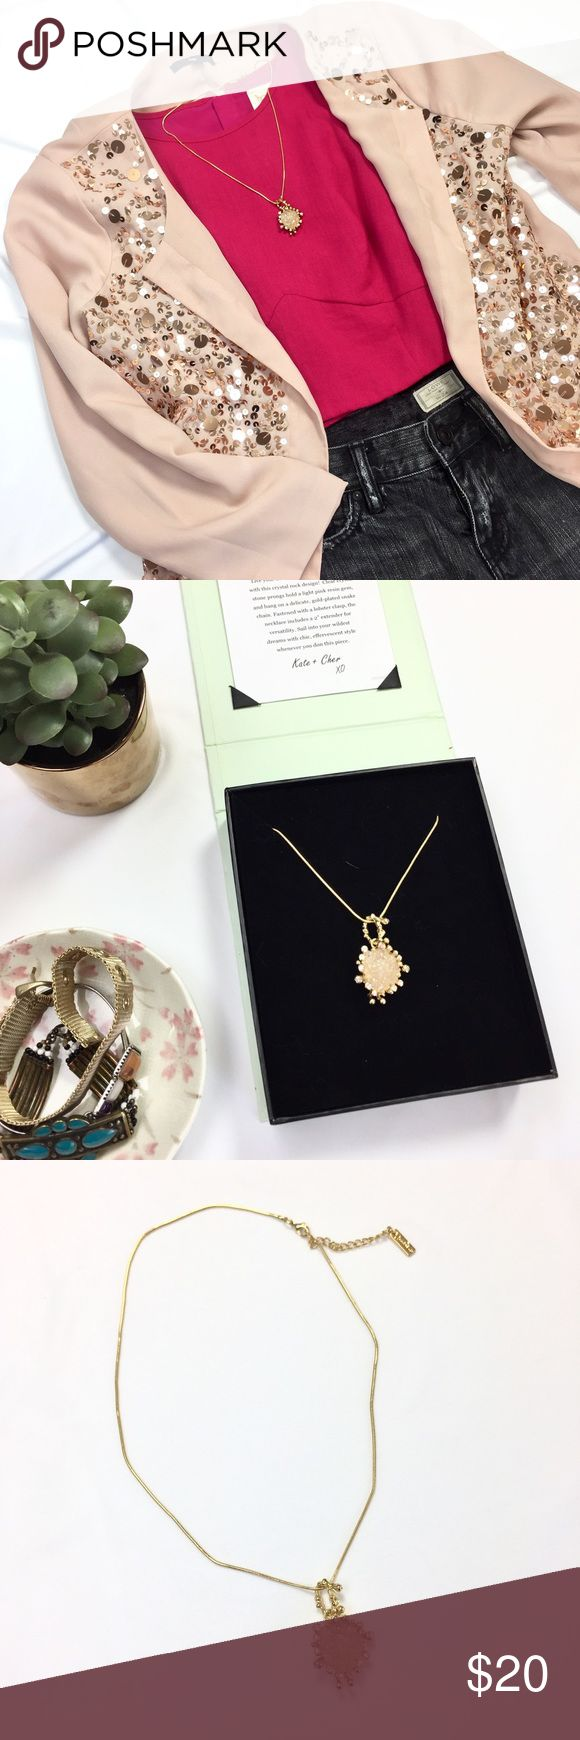 """JewelMint Fantasia Necklace • NO TRADES • Pink resin gem pendant in 18"""" gold plated snake chain. Lobster clasp fastener with 2"""" extender. Worn once and in excellent condition. Comes with original packaging. [[ Other items pictured are also currently listed in my closet: GAP sequined blazer, AllSaints Lowe Low Rise shorts, Keepsake the Label Fuchsia Crop top, and JewelMint Mesh Marvel bracelet ]] • NO TRADES • Jewelmint Jewelry Necklaces"""